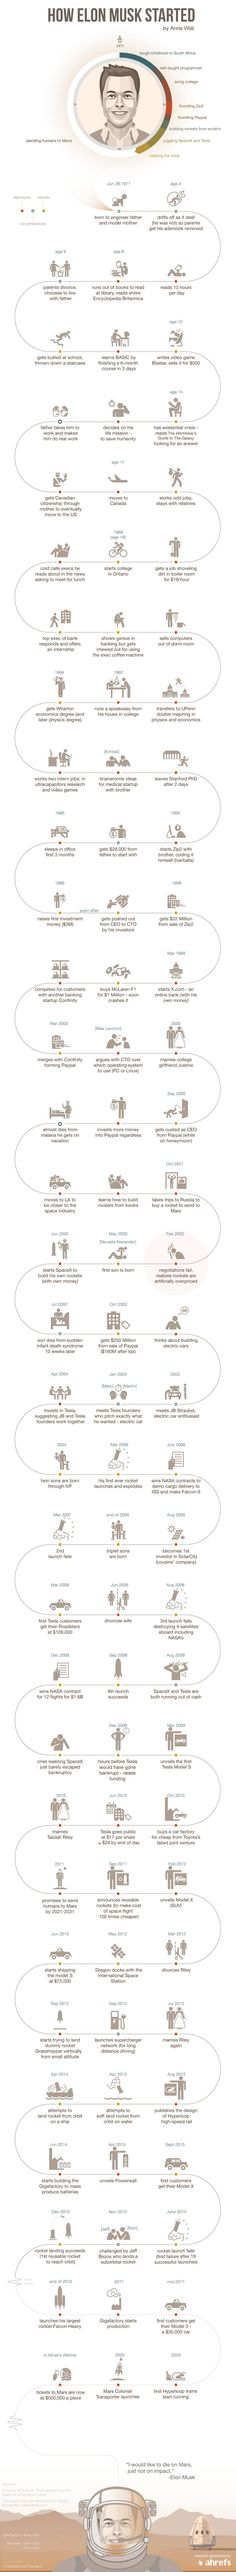 Step by Step: How Elon Musk Built His Empire